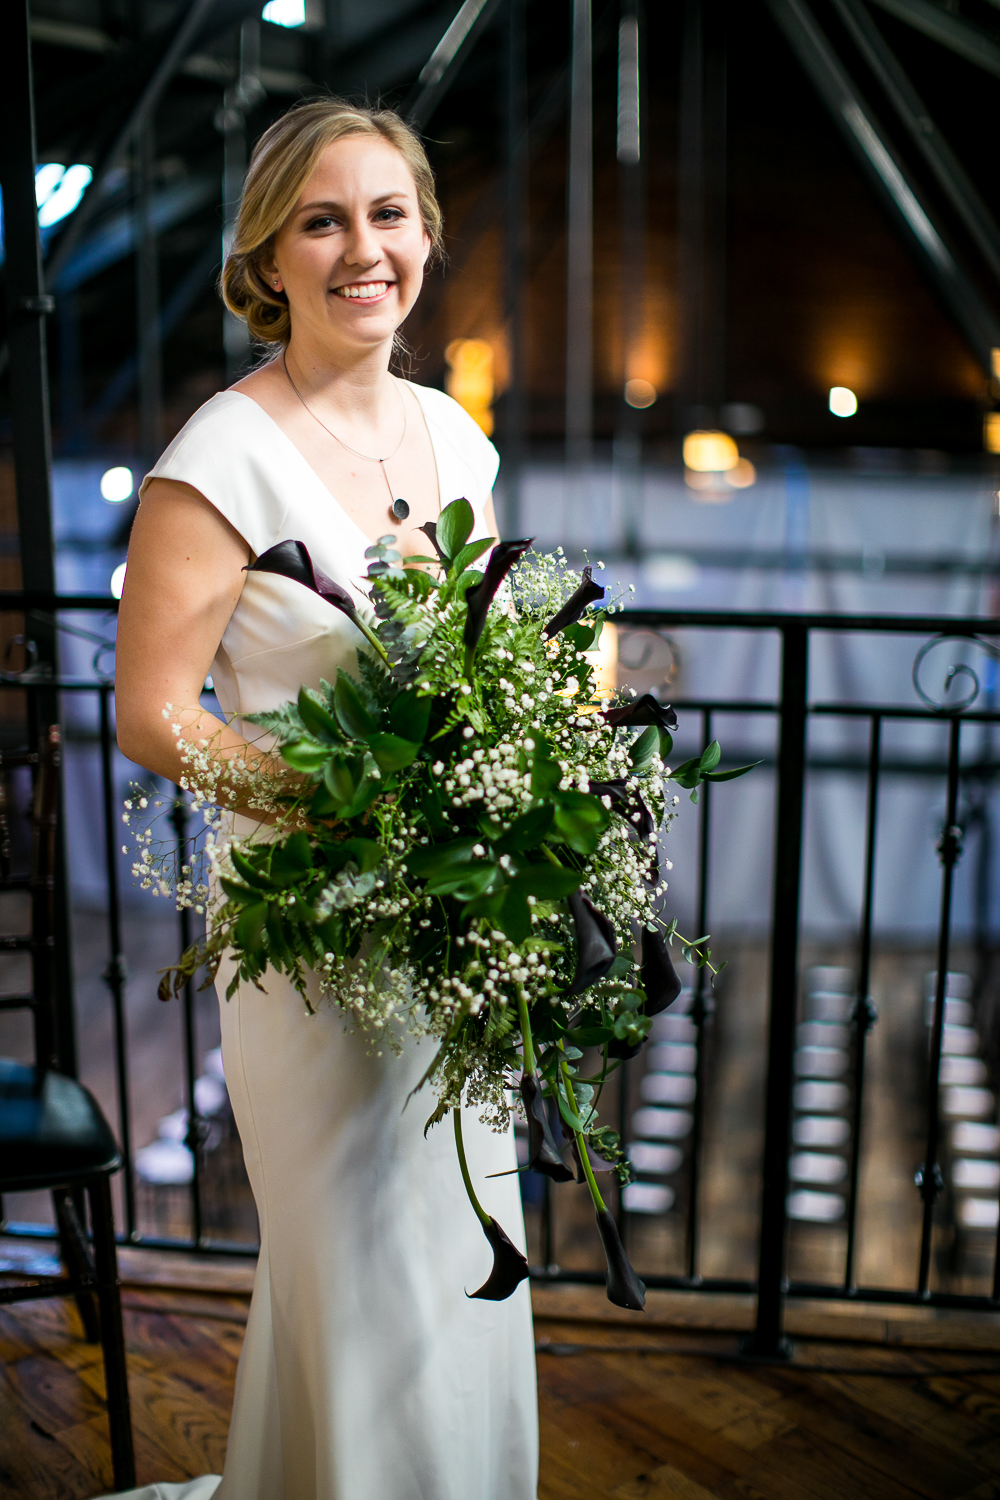 Portrait of a bride on her wedding day | 26 Bridge Wedding Photos | Lesbian Brooklyn Wedding | Kristin and Marisa's Wedding